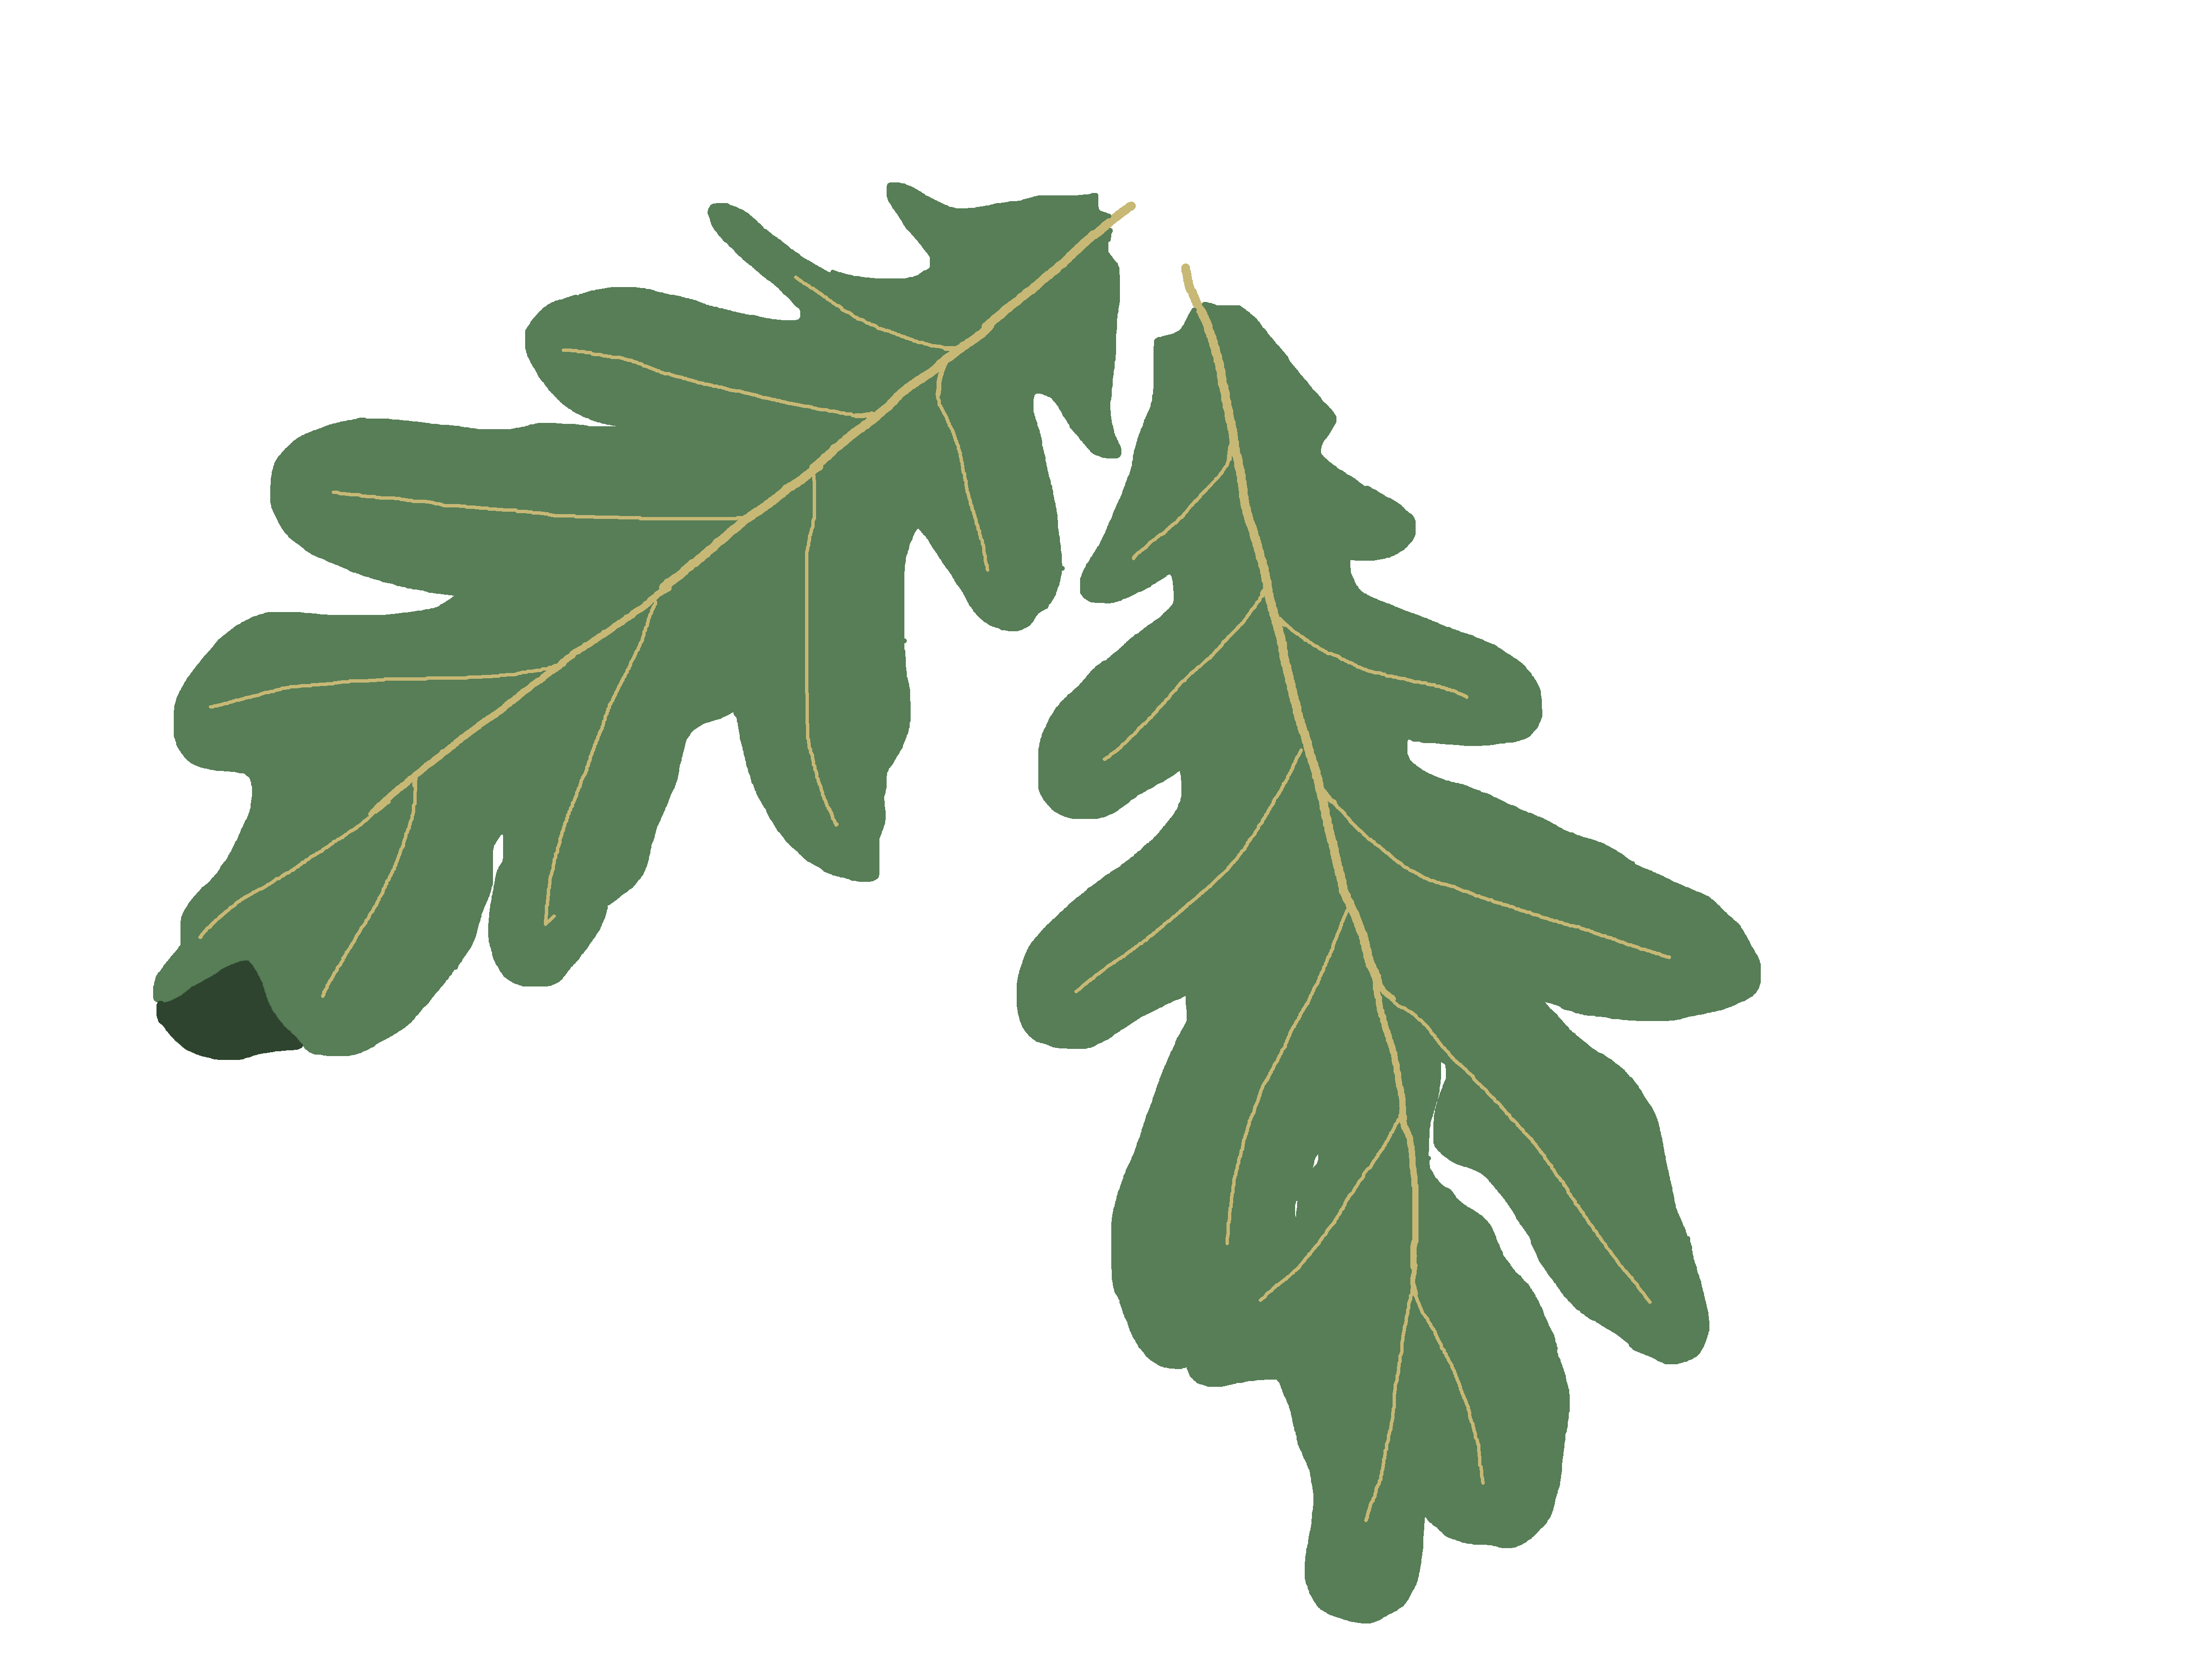 Oak leaf green clipart.